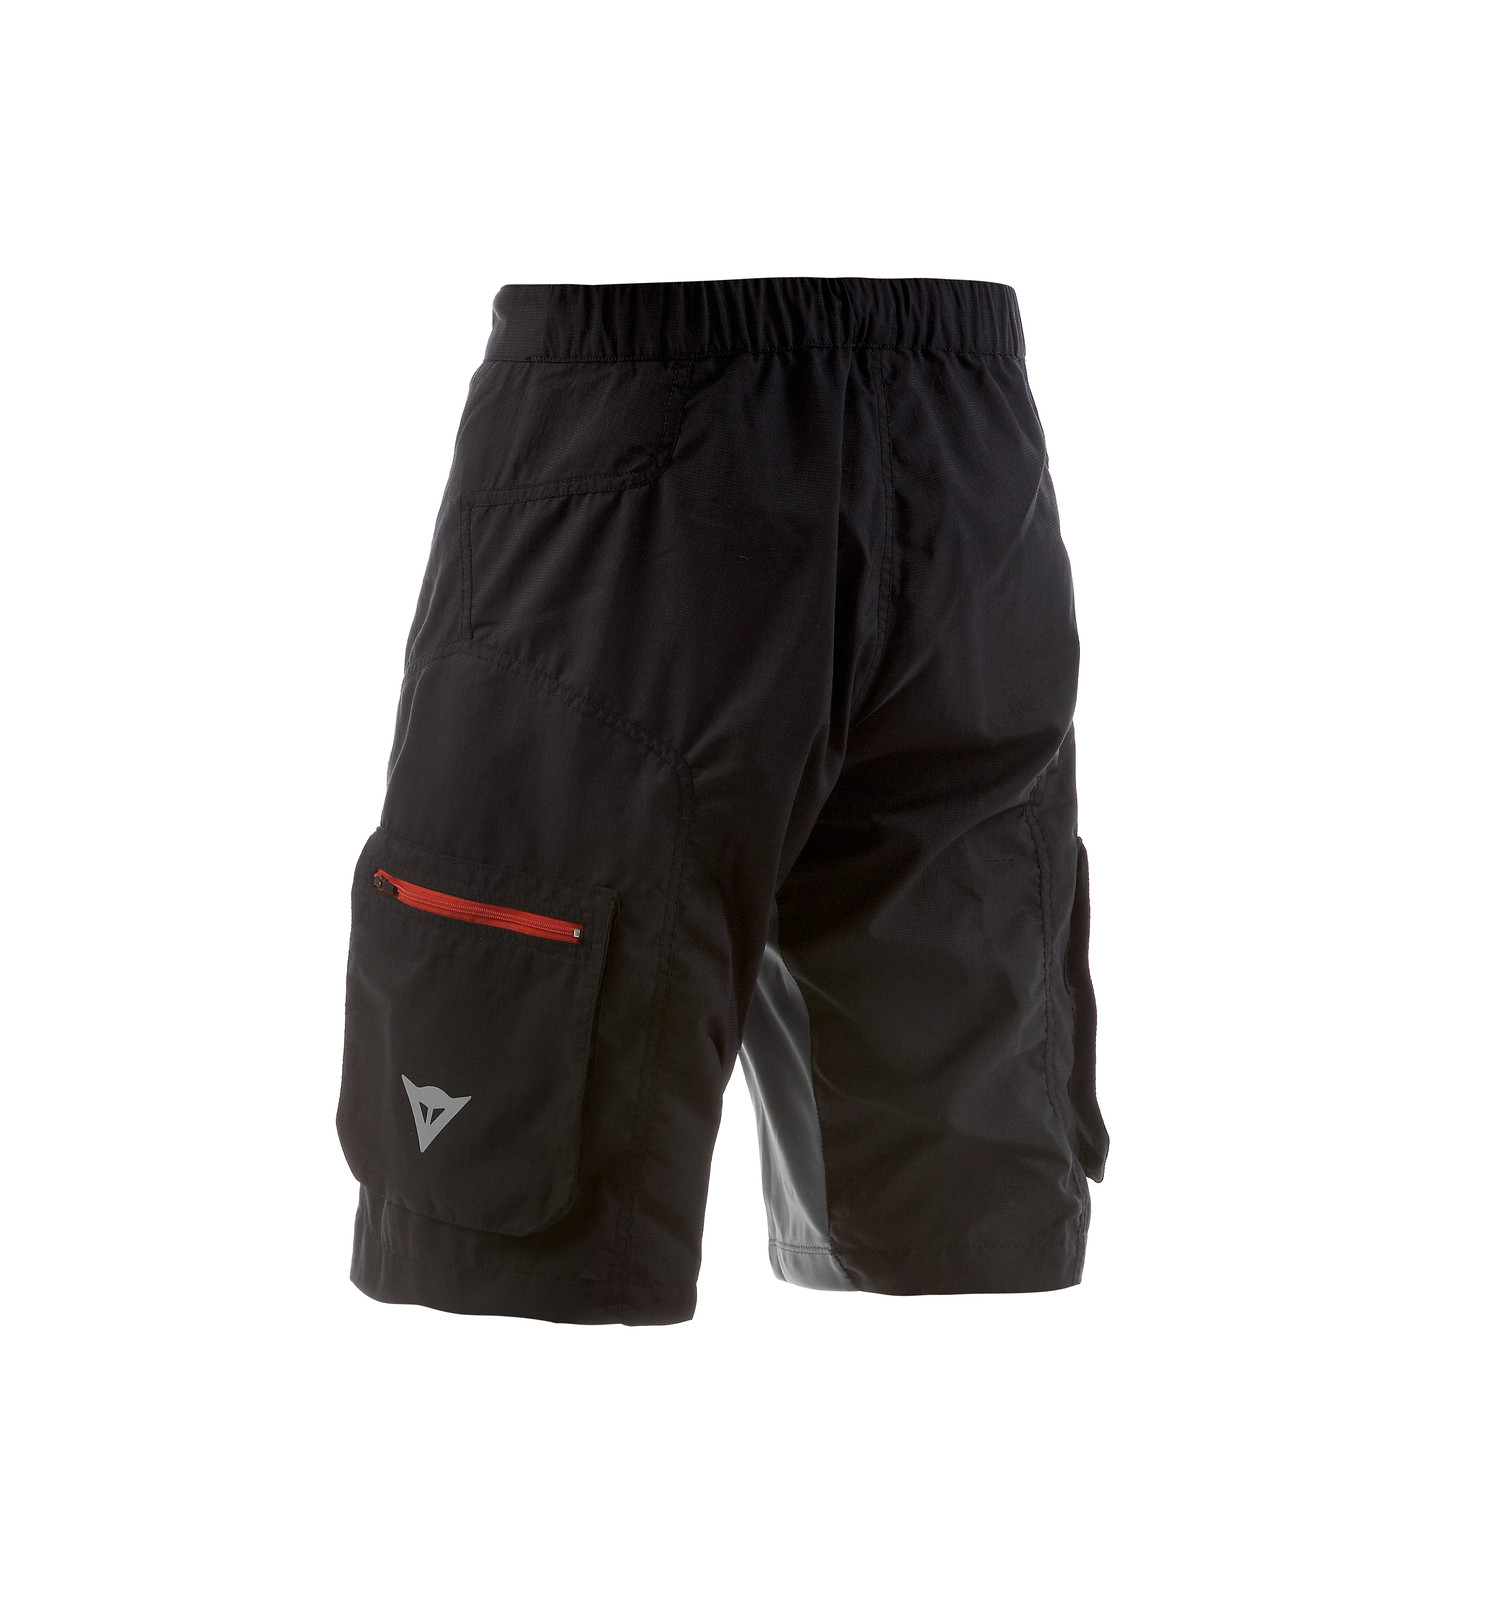 Dainese Extreme Revolution Riding Short 3769430_001-092348_B_S_press